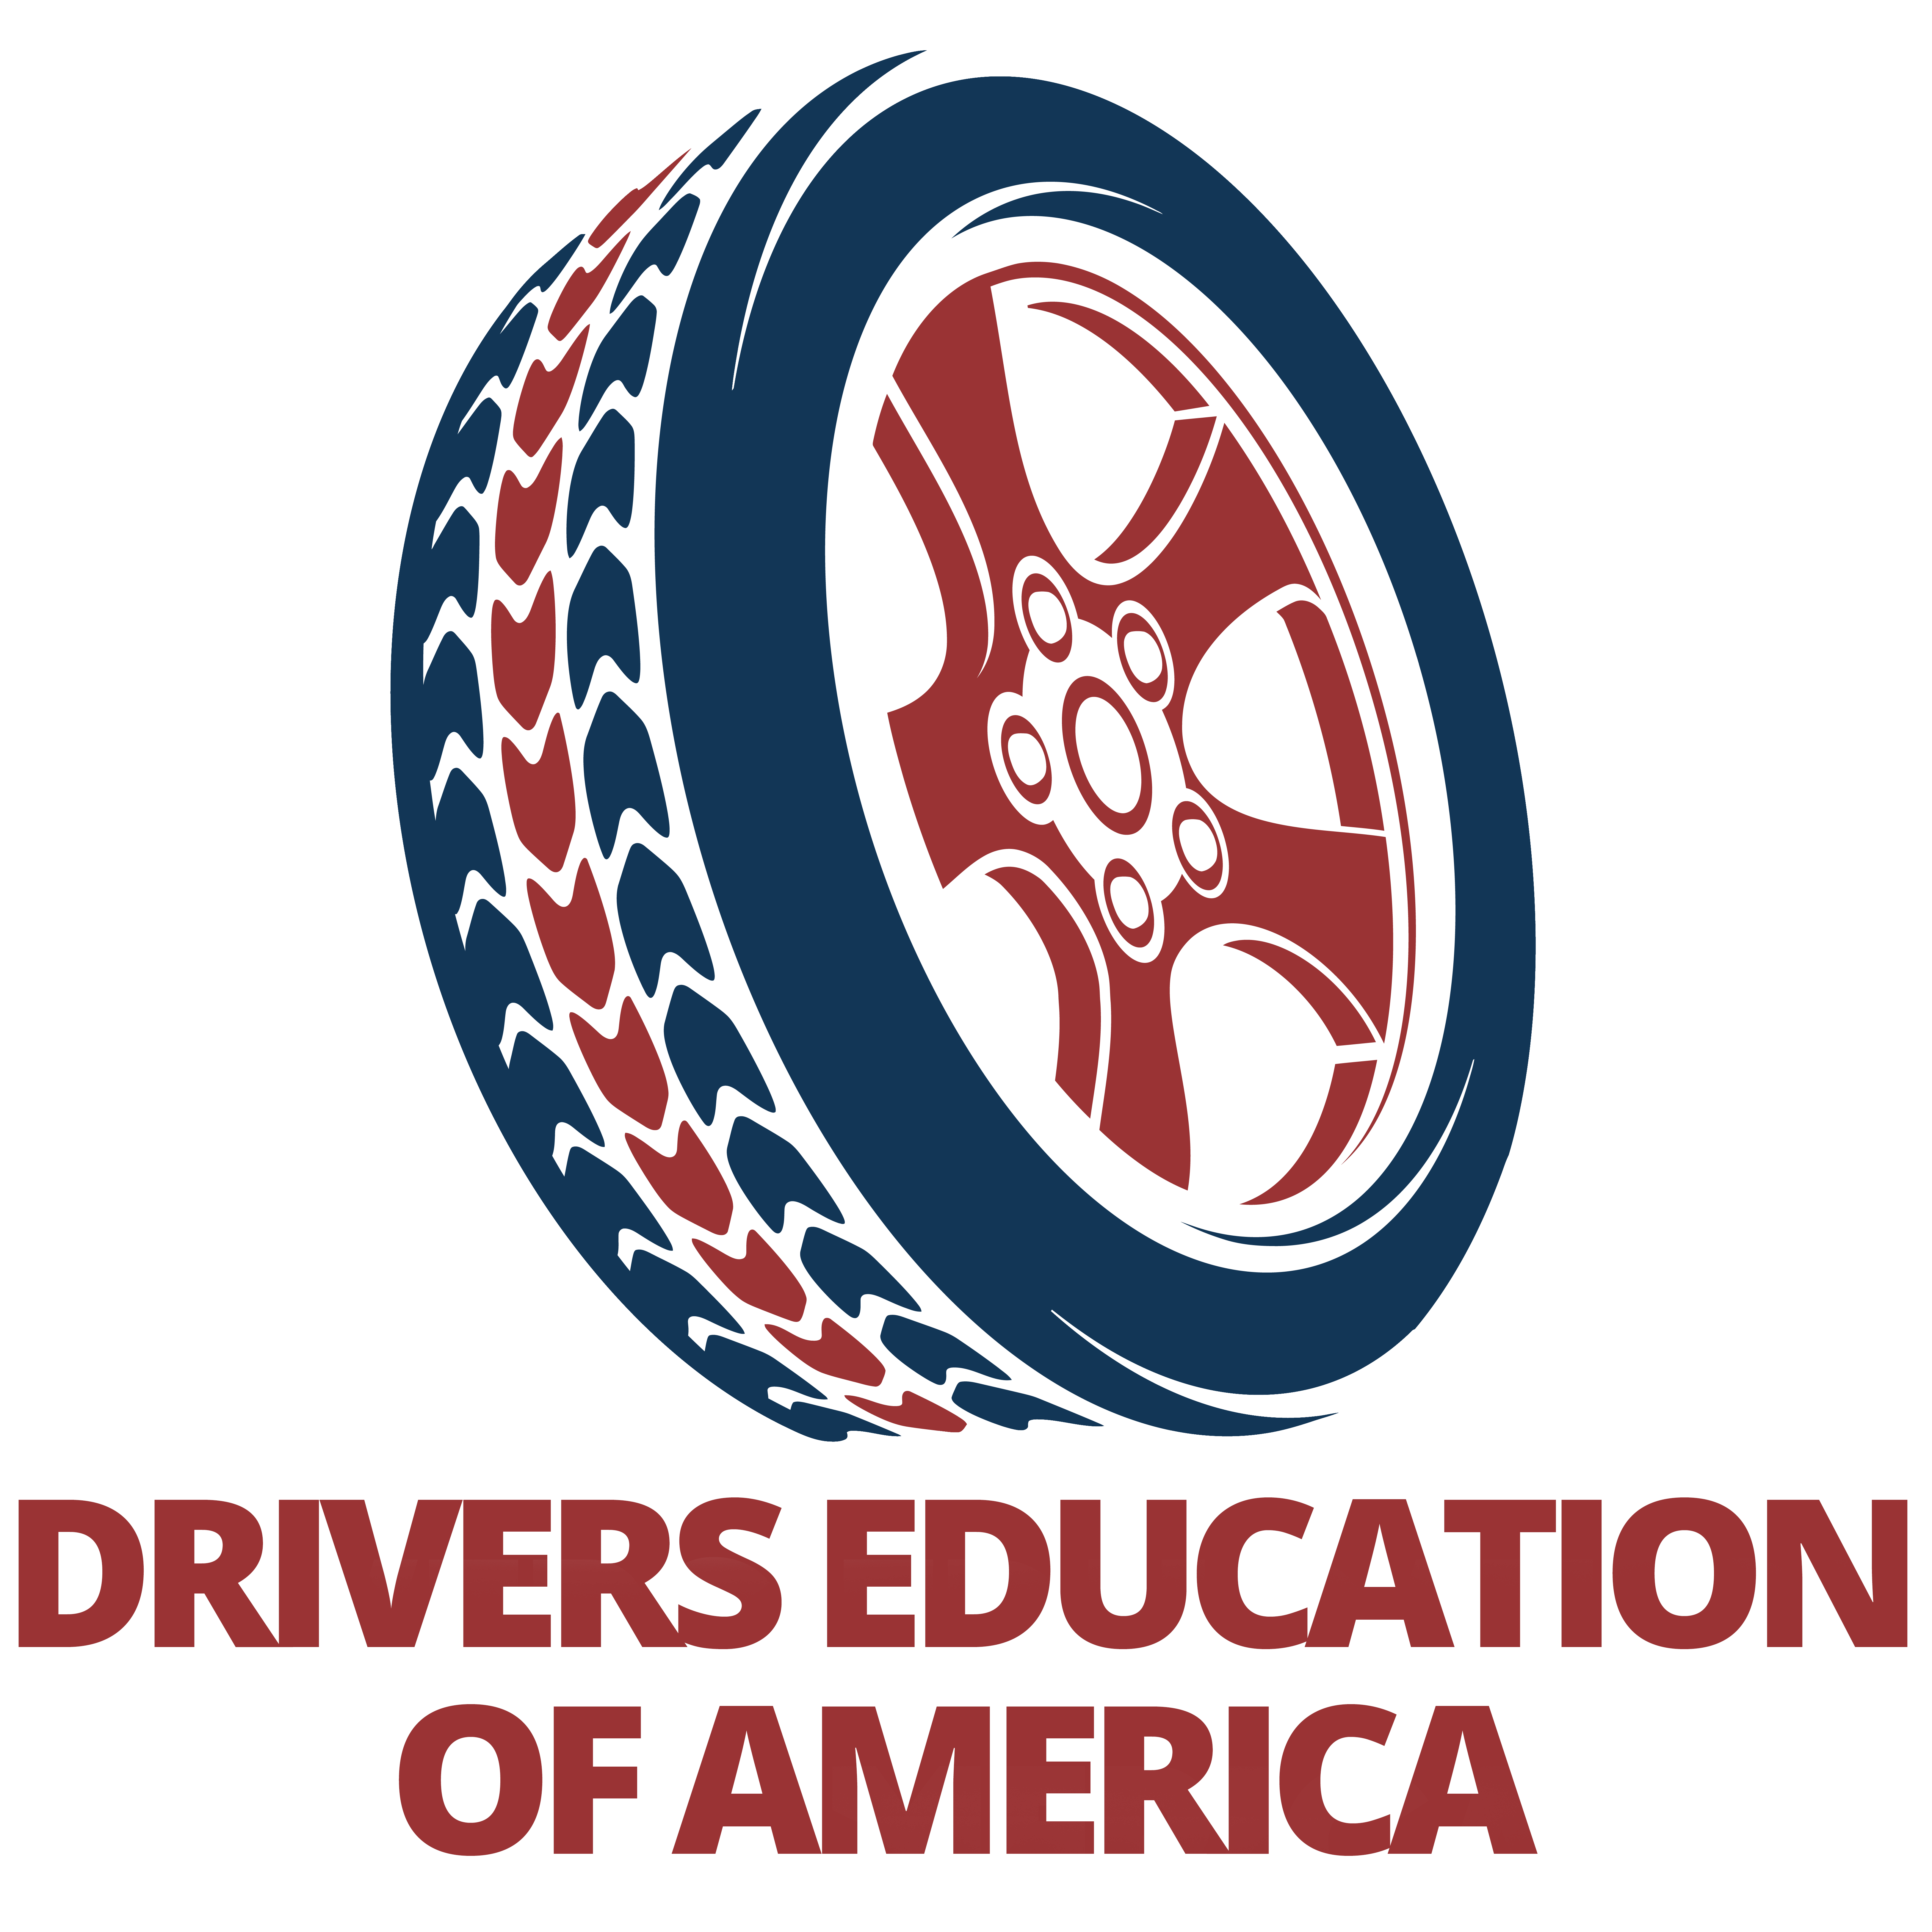 Drivers Education of America